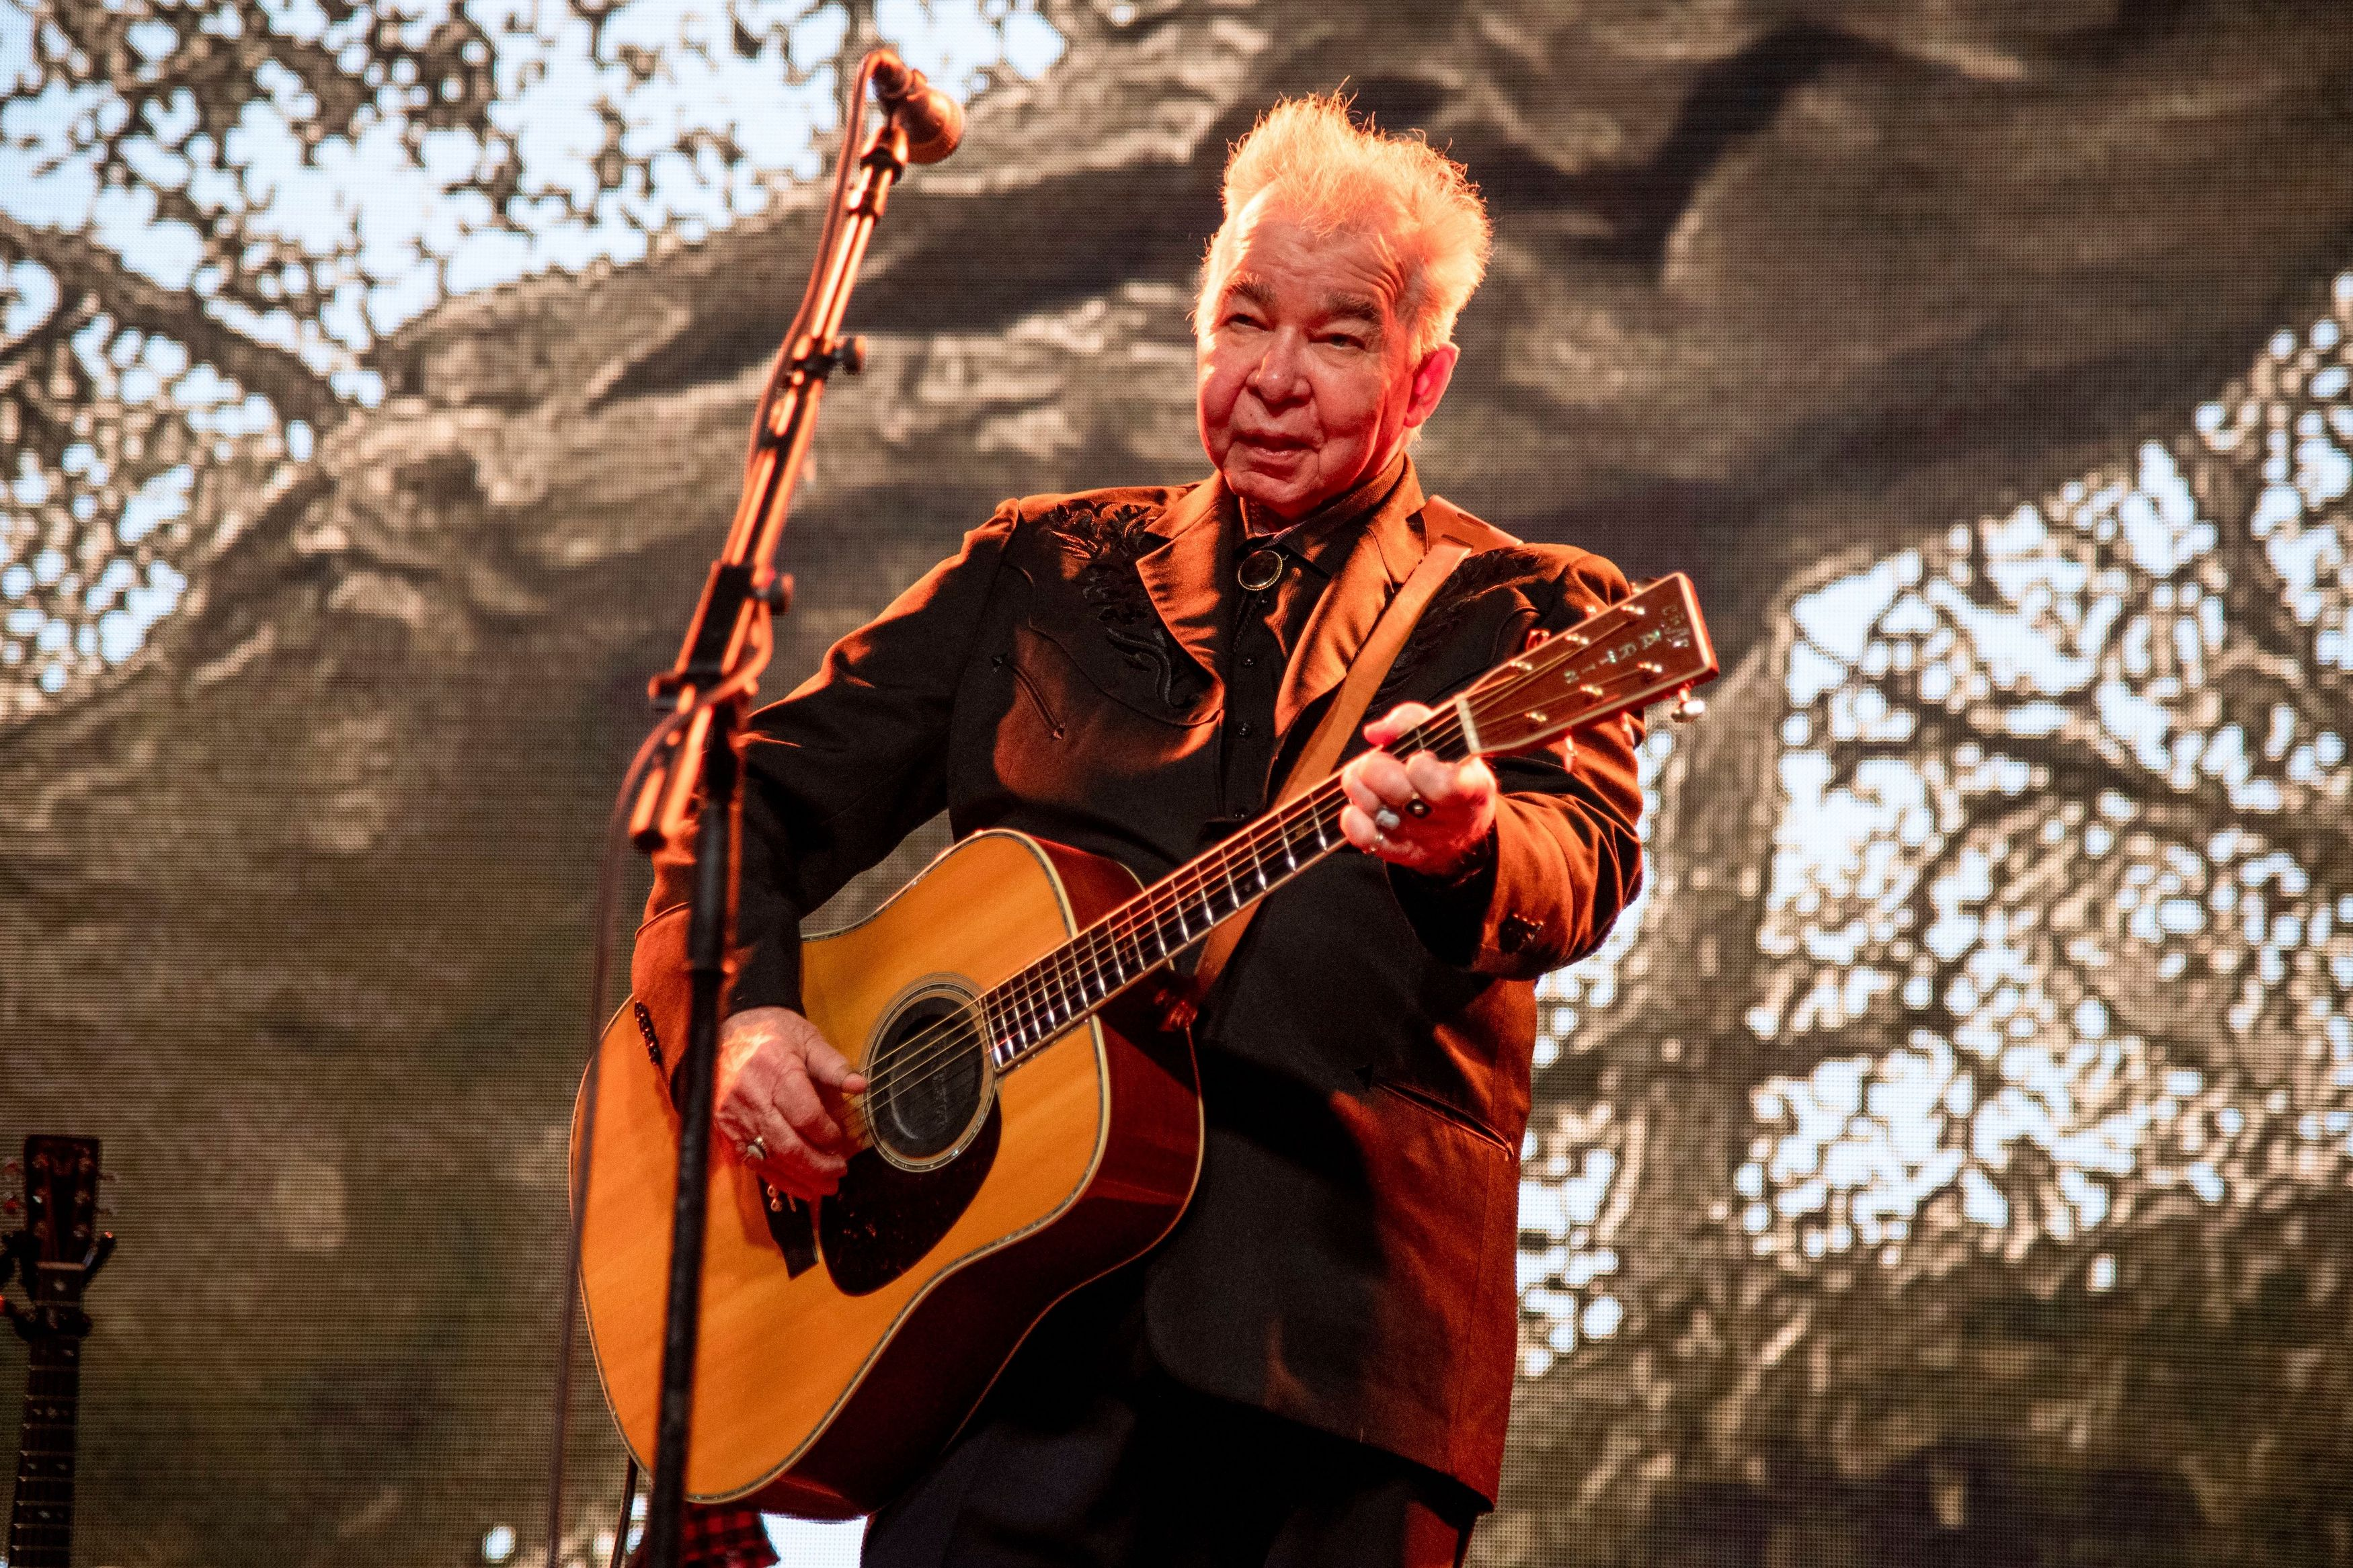 John Prine Hospitalized With COVID-19 Symptoms: 'His Situation Is Critical'